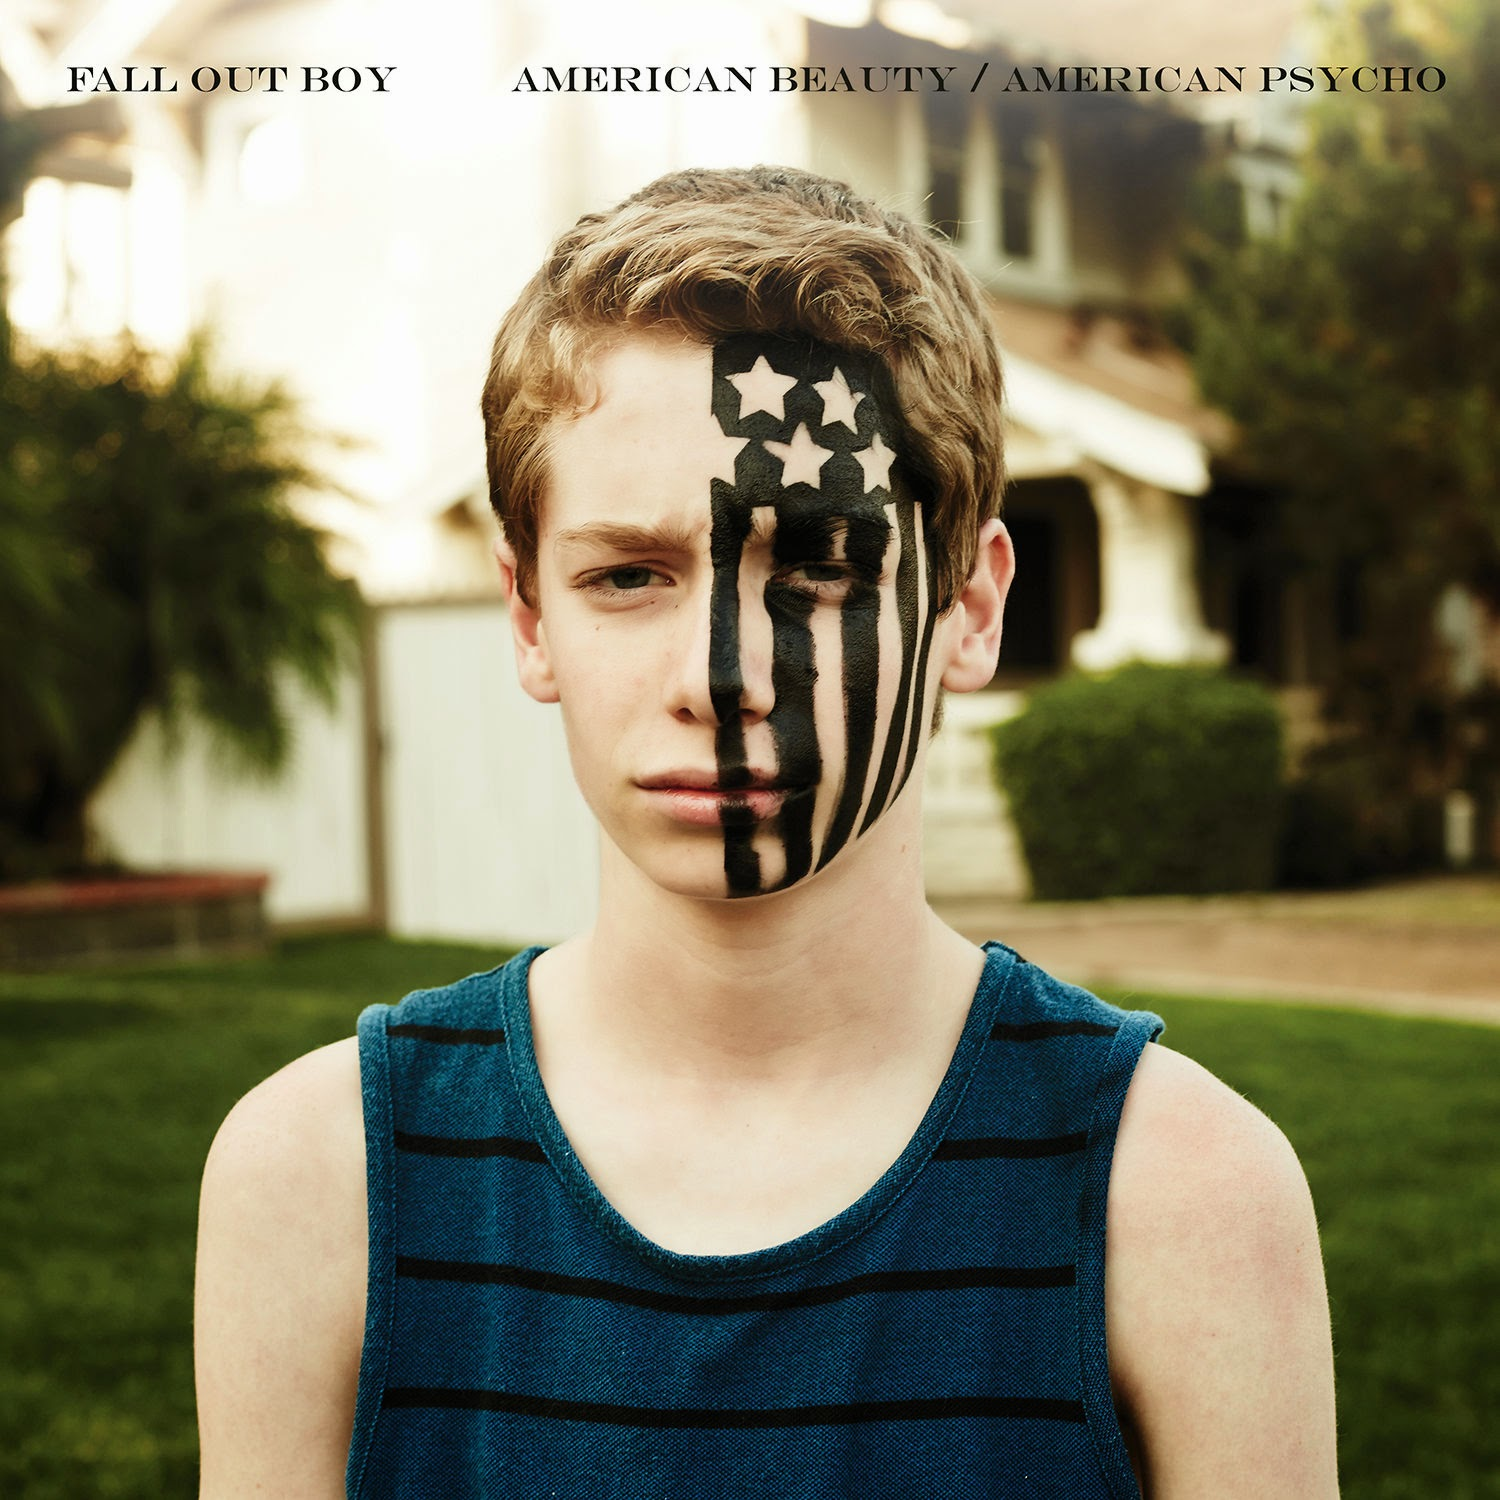 http://shop.virginemi.com/falloutboy/*/*/American-Beauty-American-Psycho/3MKF0000000